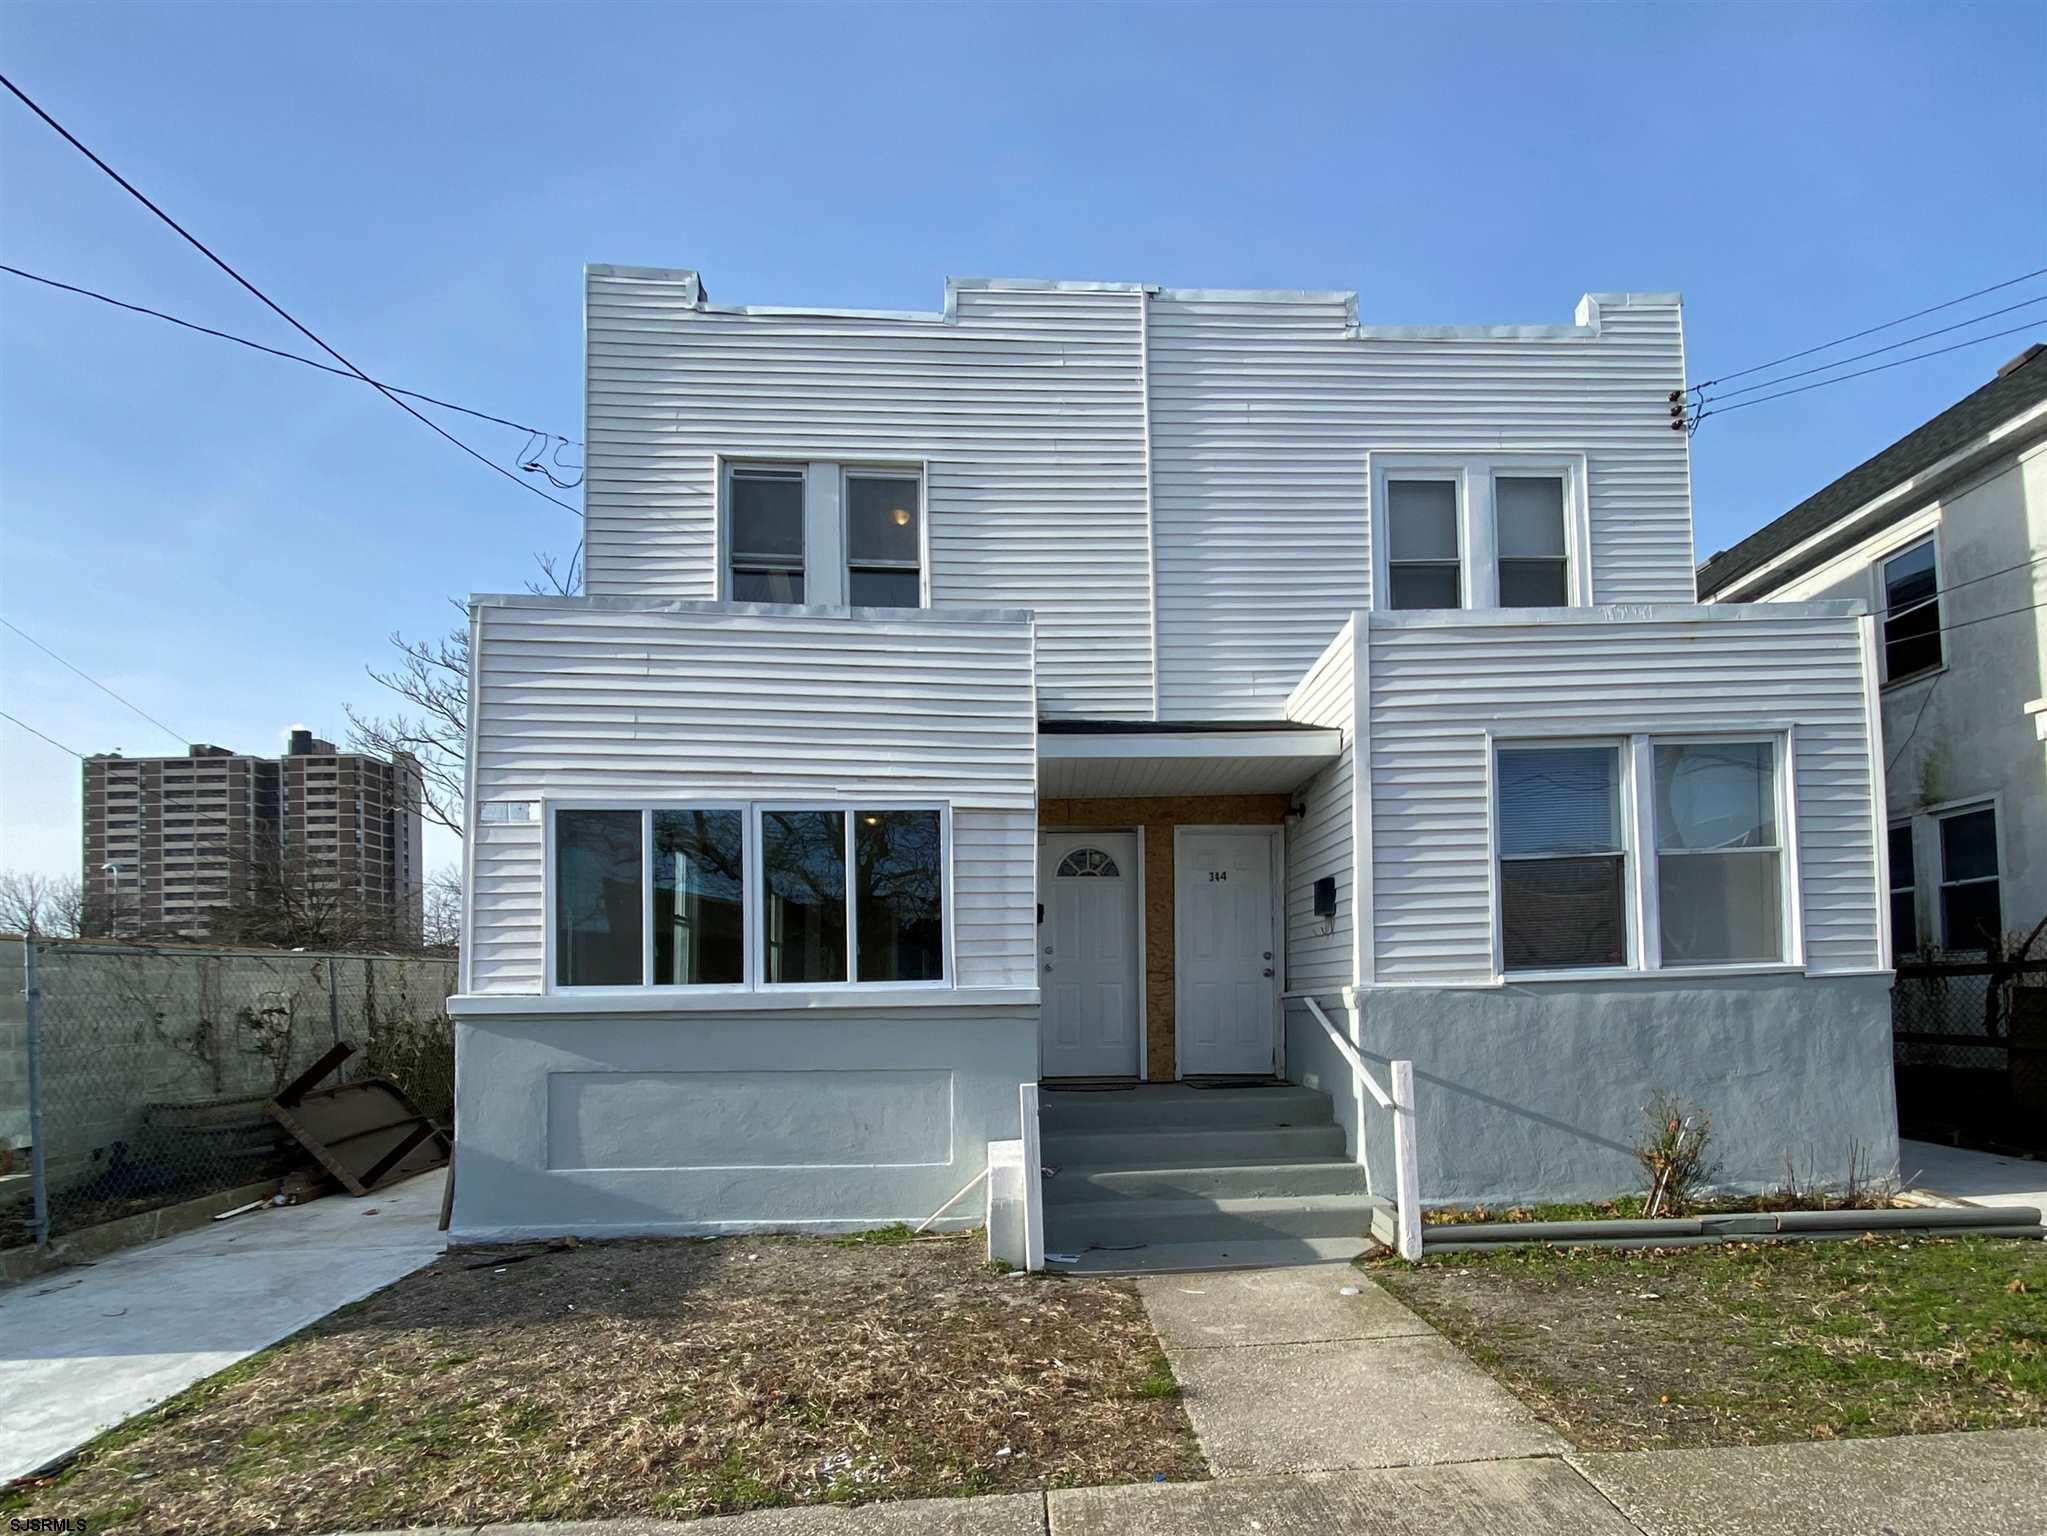 Totally renovated two-story home! Freshly painted and new laminate flooring throughout! NEW HVAC SYS